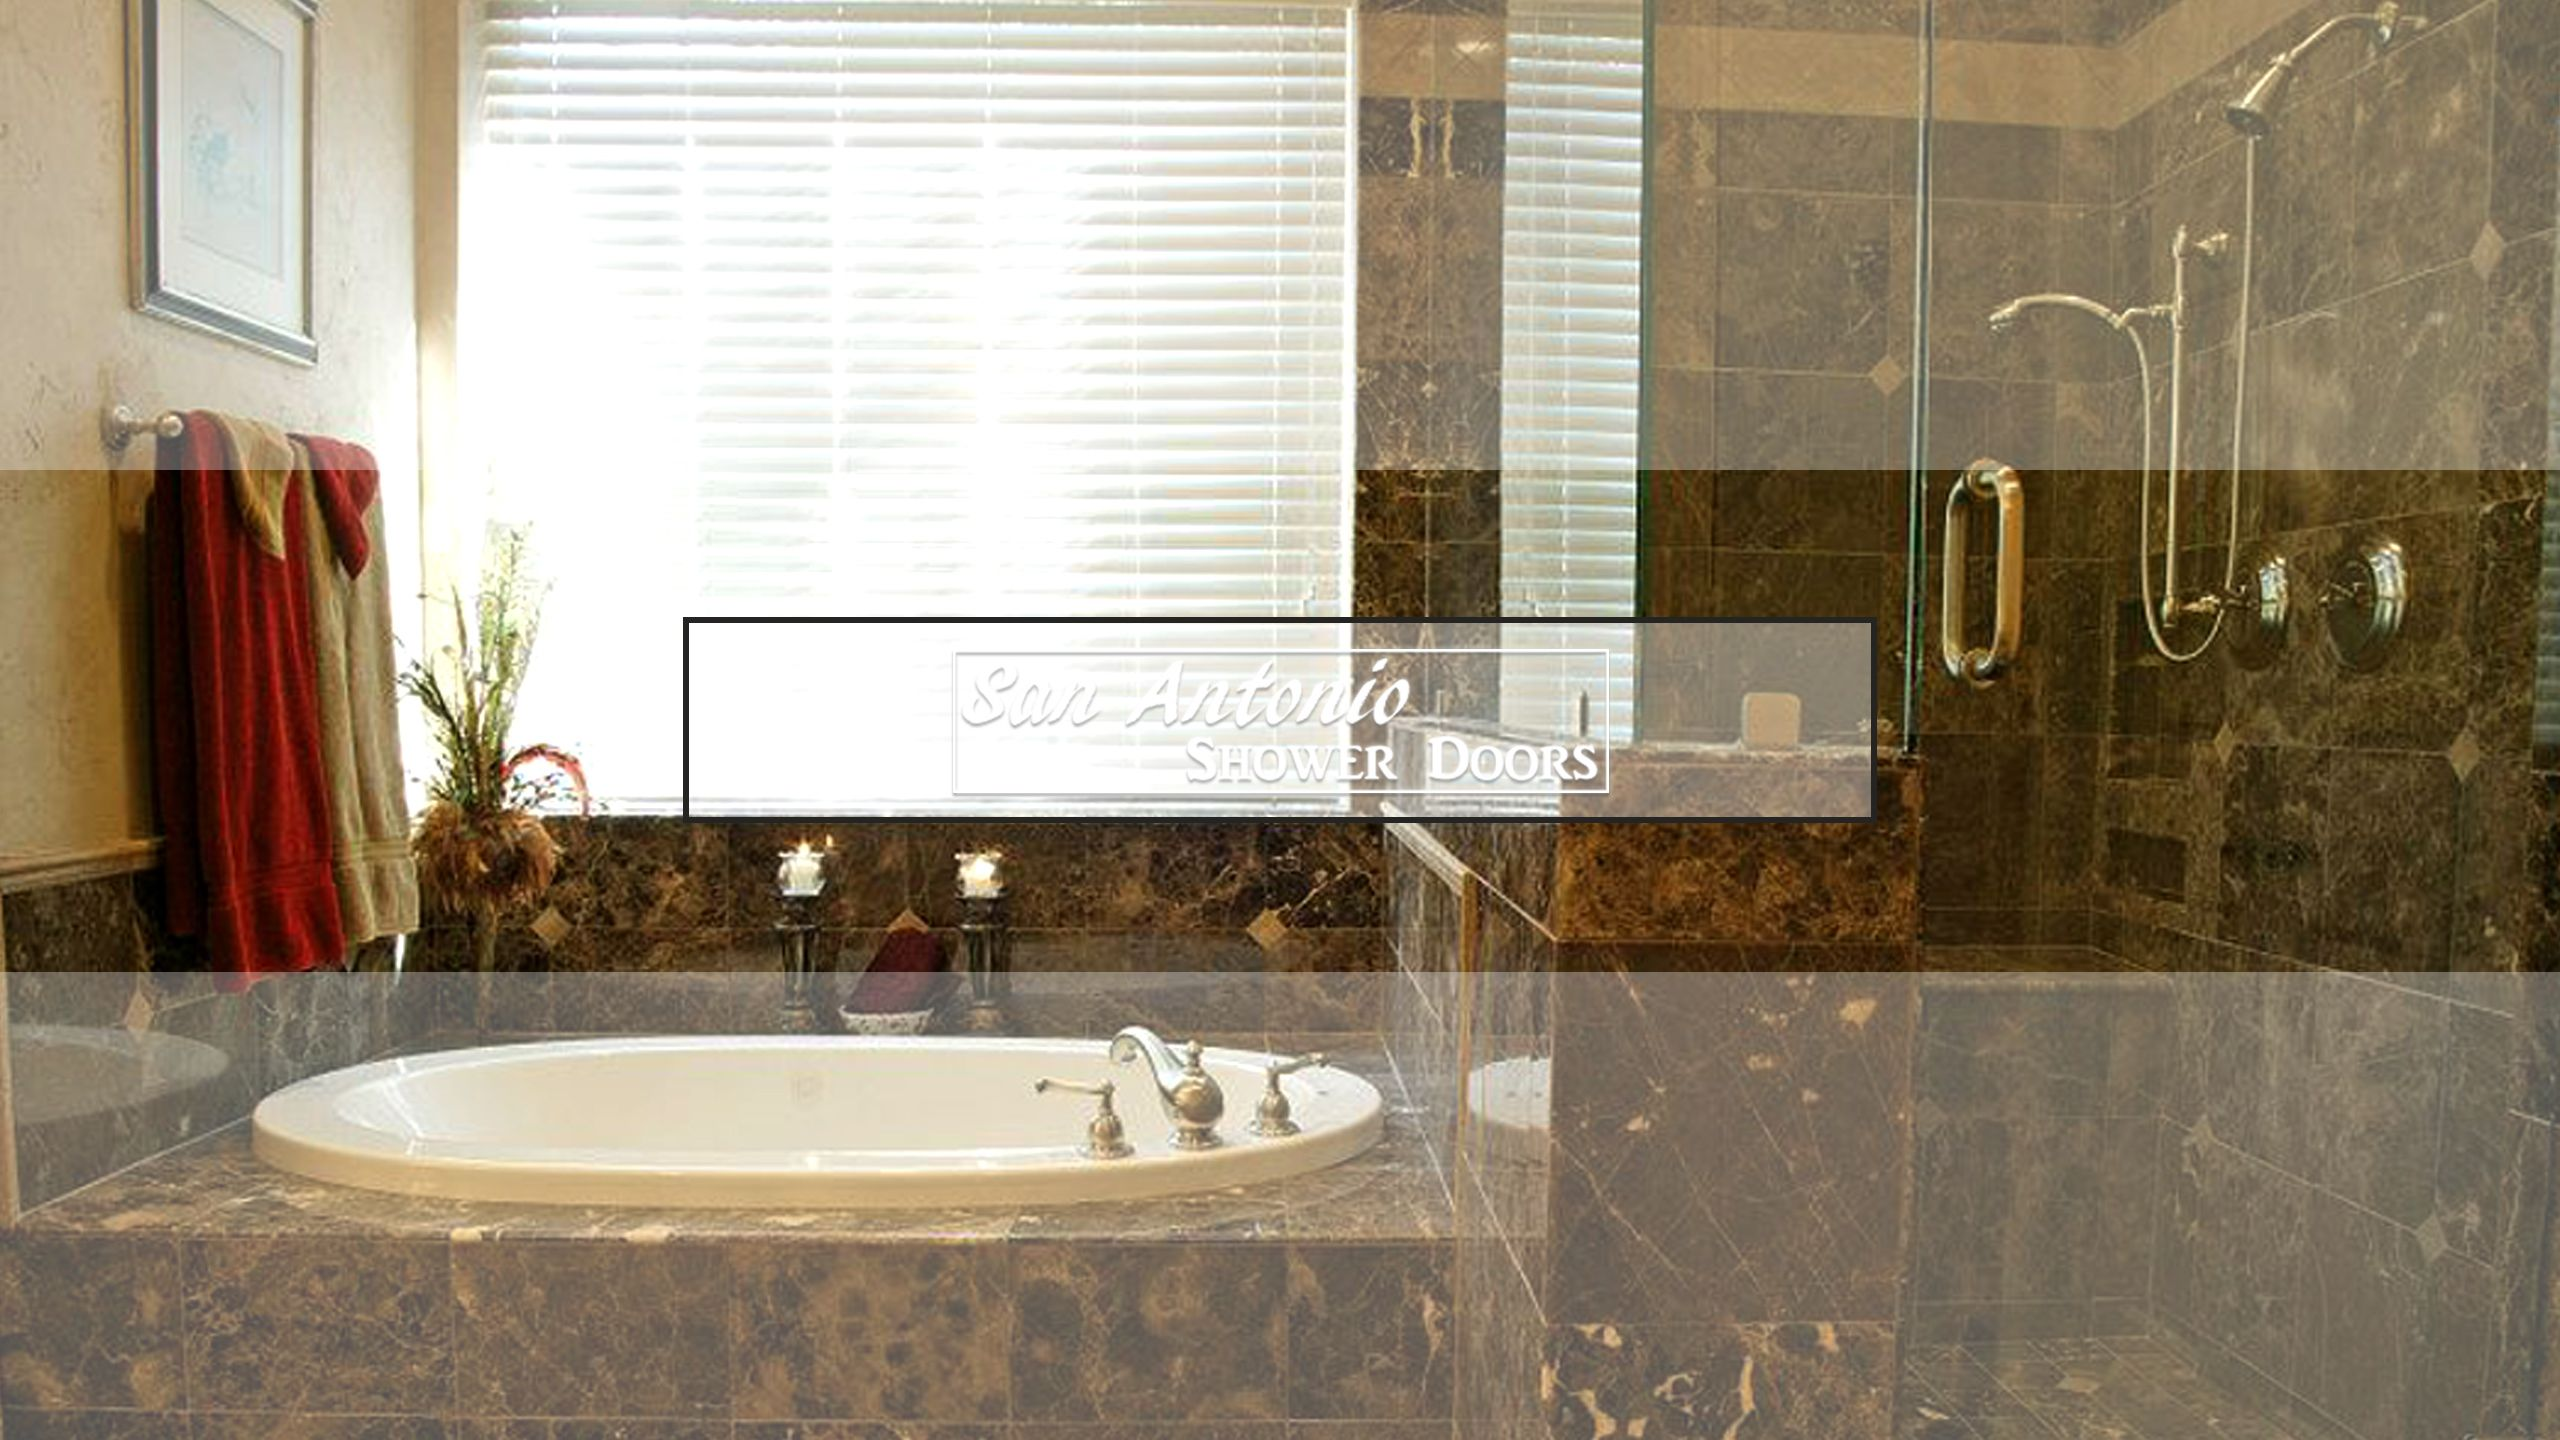 San Antonio Shower Doors Offers Custom Gl In Tx Give Us A Call Today At 210 361 3813 We Offer Repairs